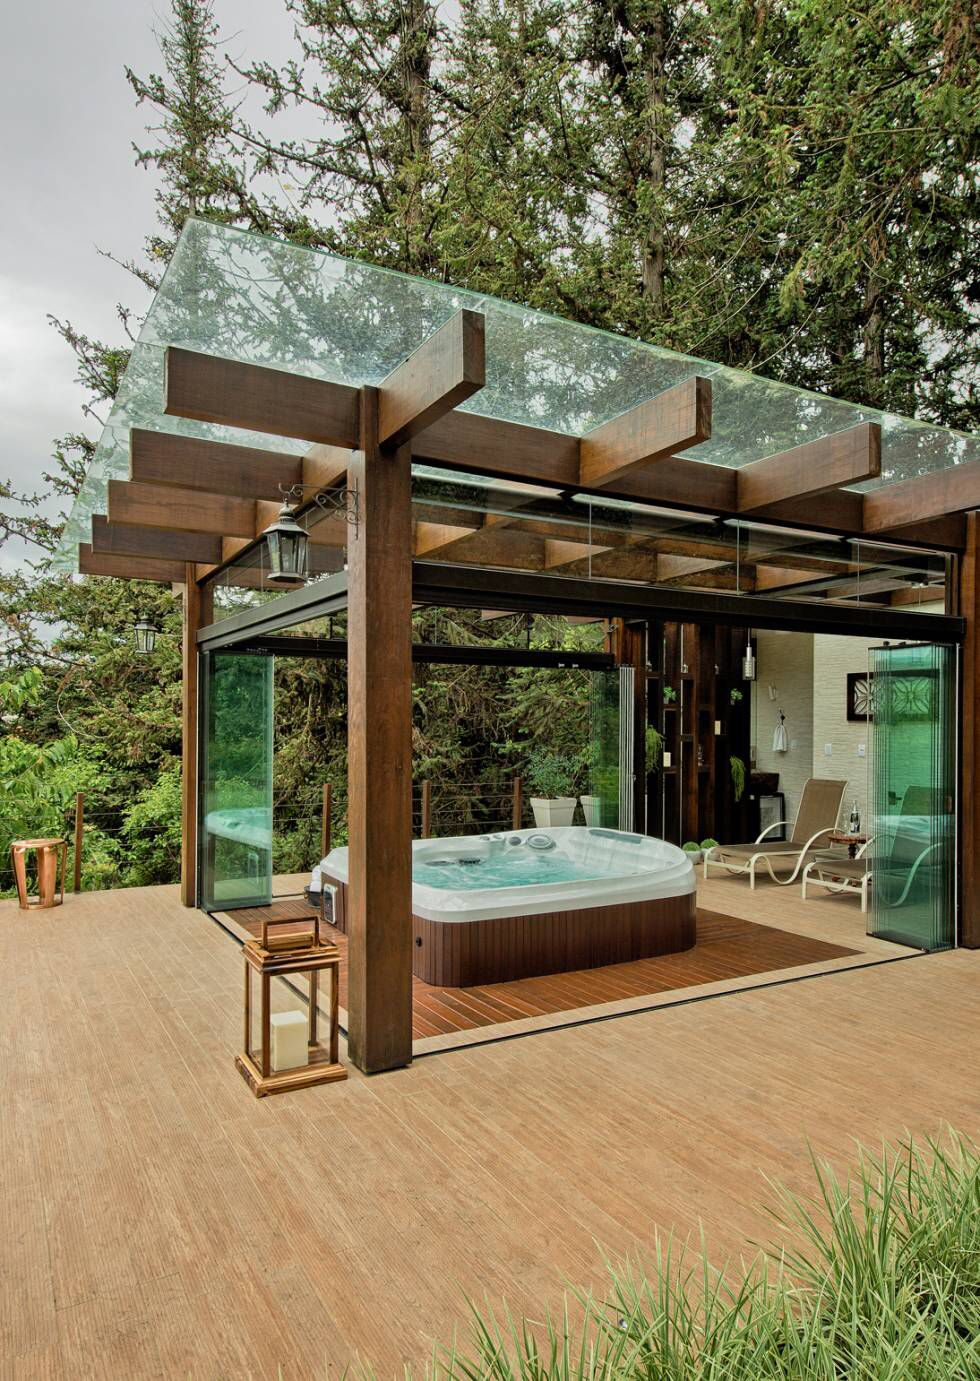 Jacuzzi Extérieur Idee Deco Hot Tub Pergola Clearly See The Stars On Bright Nights Protects